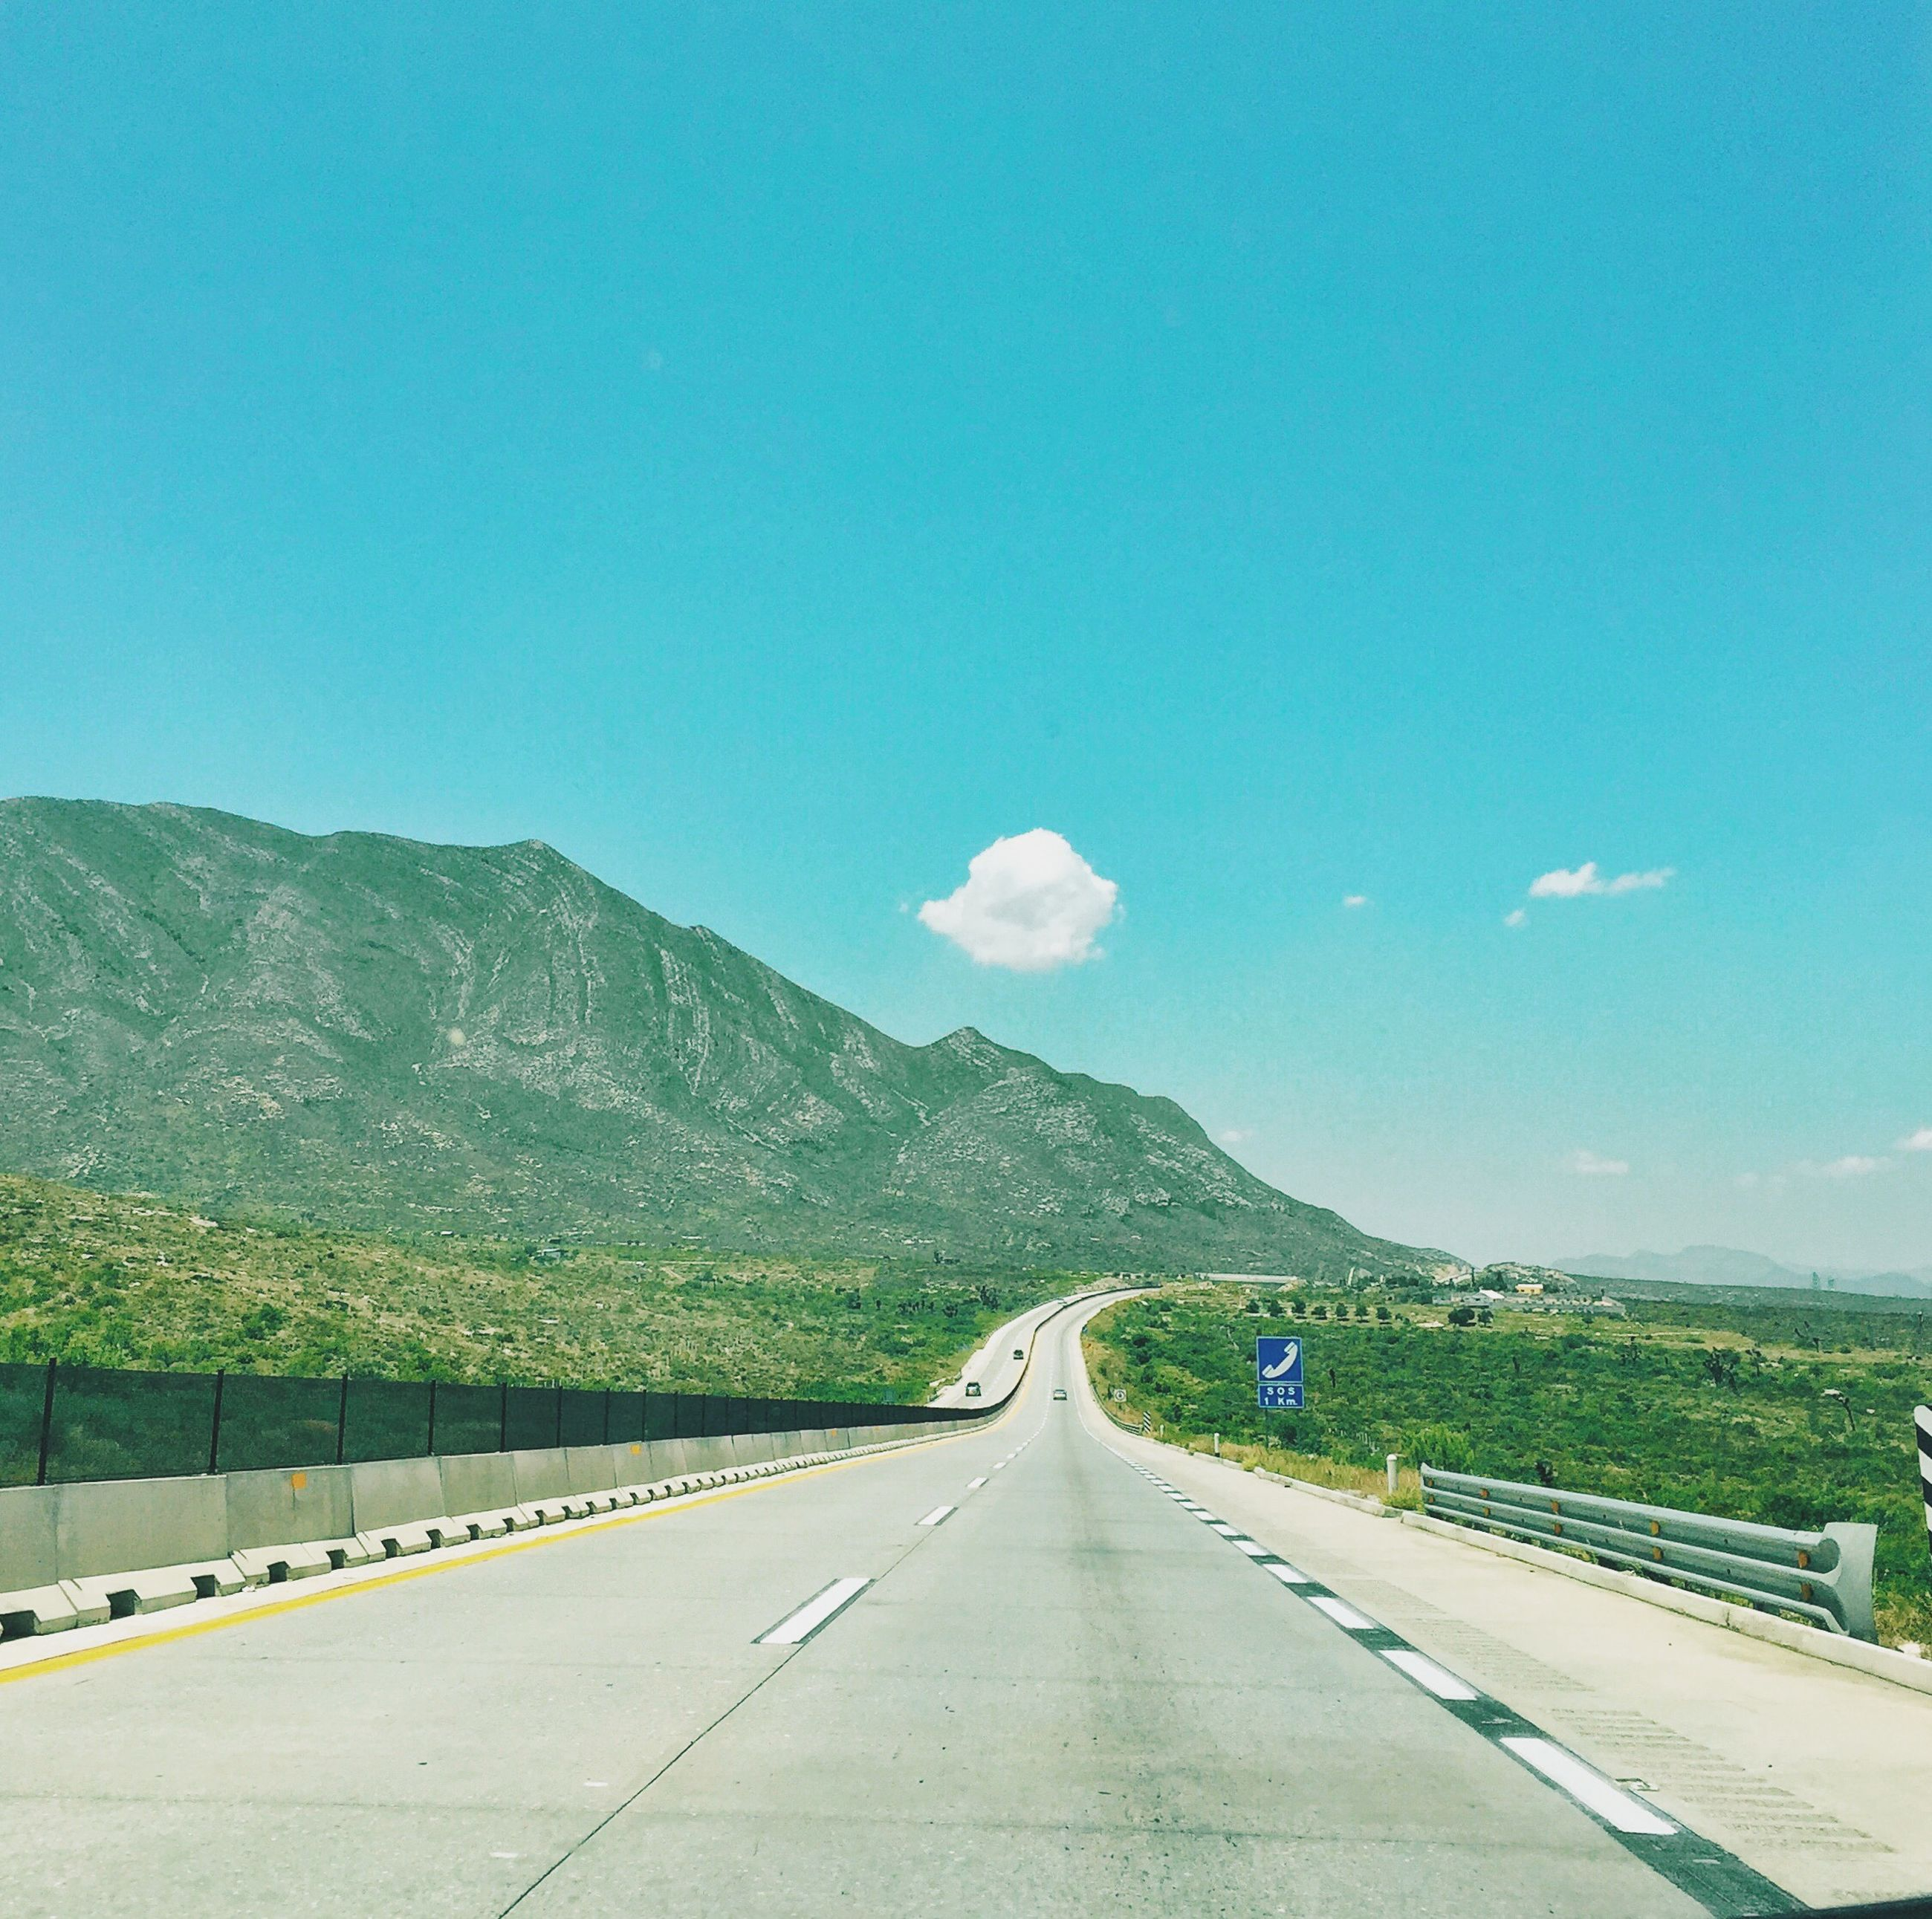 the way forward, road, transportation, diminishing perspective, road marking, mountain, vanishing point, country road, sky, blue, landscape, tranquil scene, empty, empty road, mountain range, asphalt, nature, tranquility, copy space, long